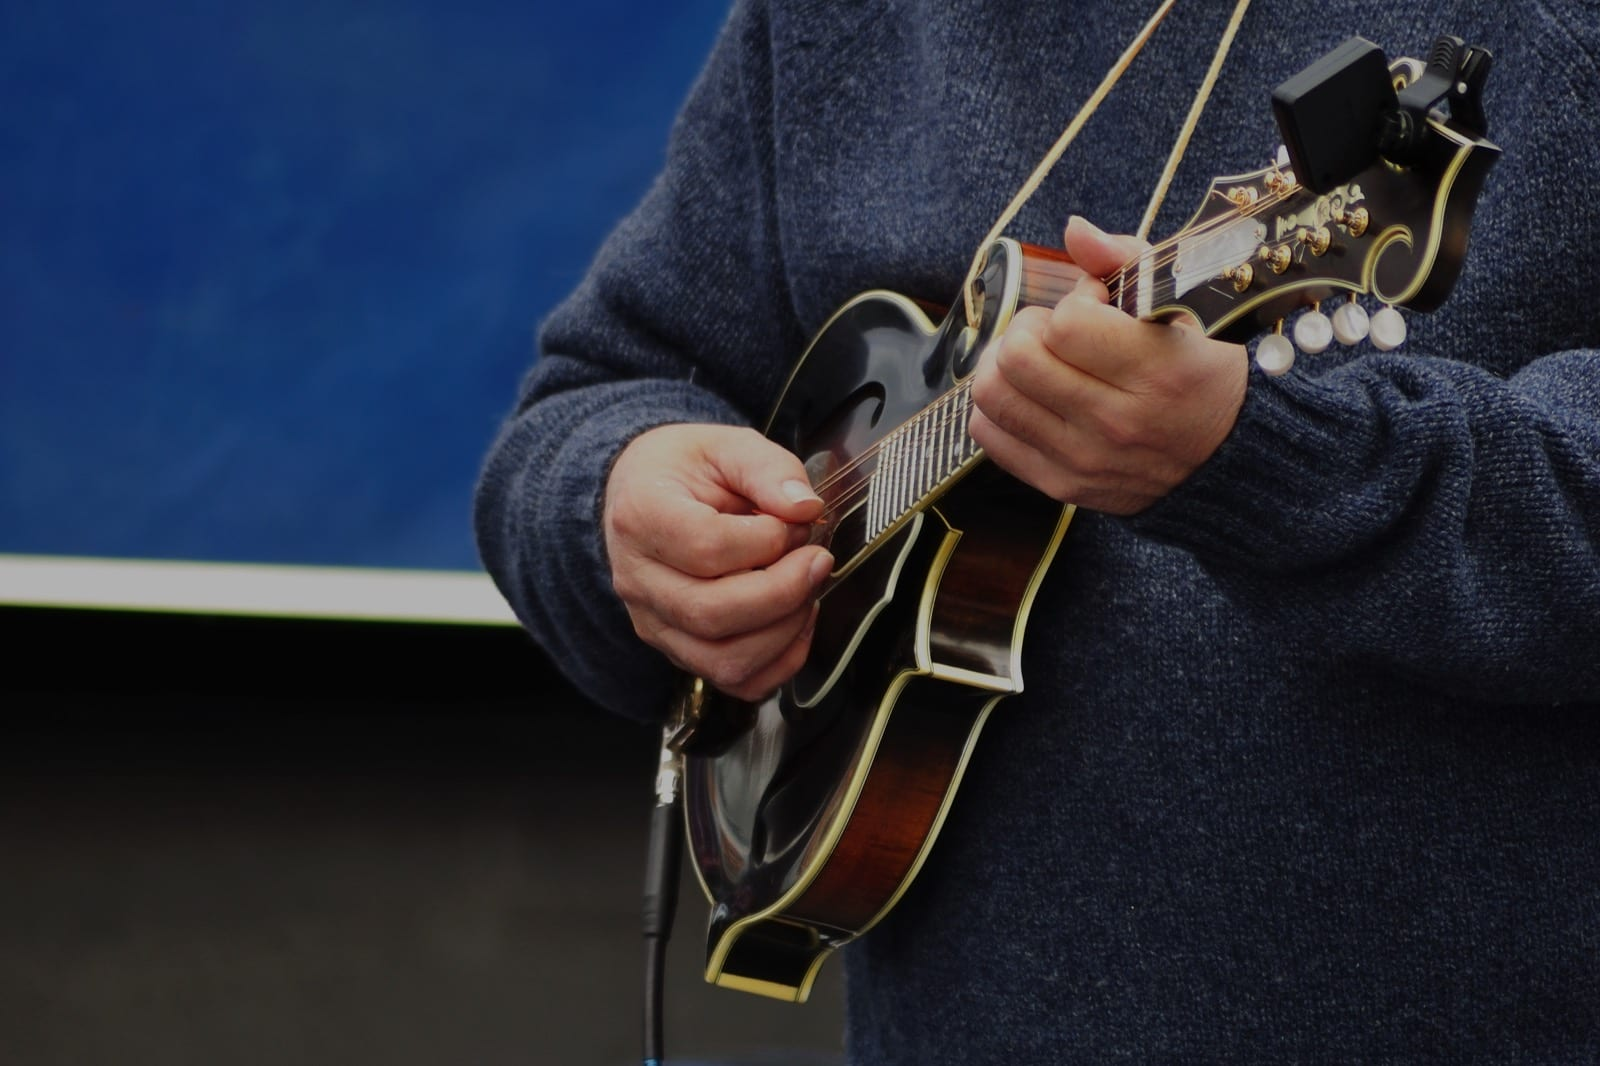 how to play mandolin for beginners - find a teacher